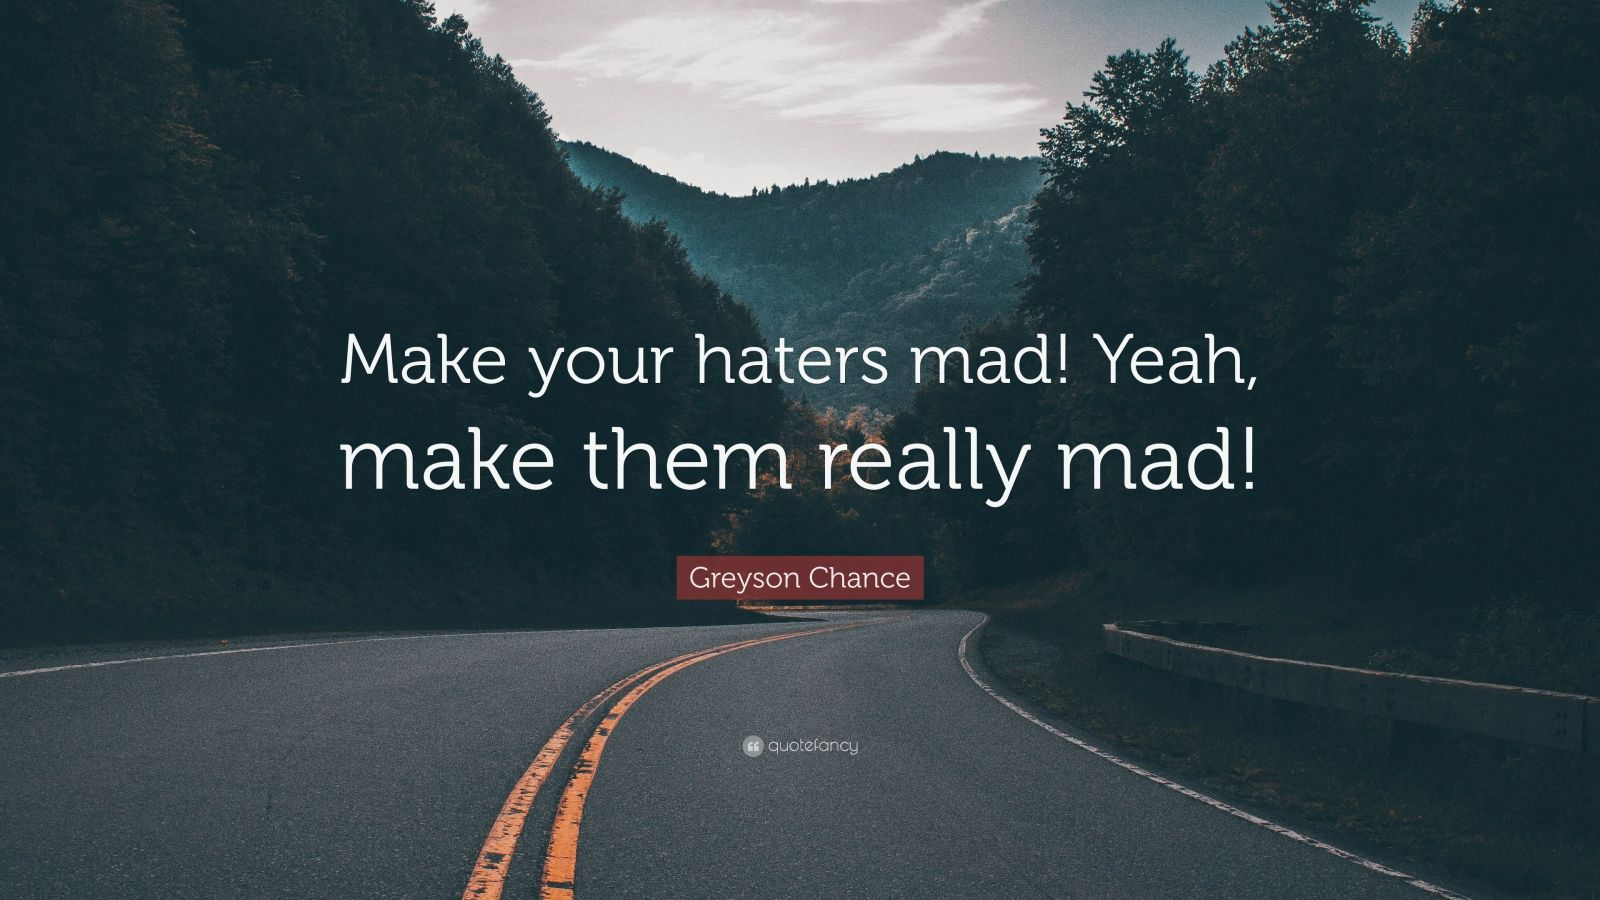 how to make haters mad